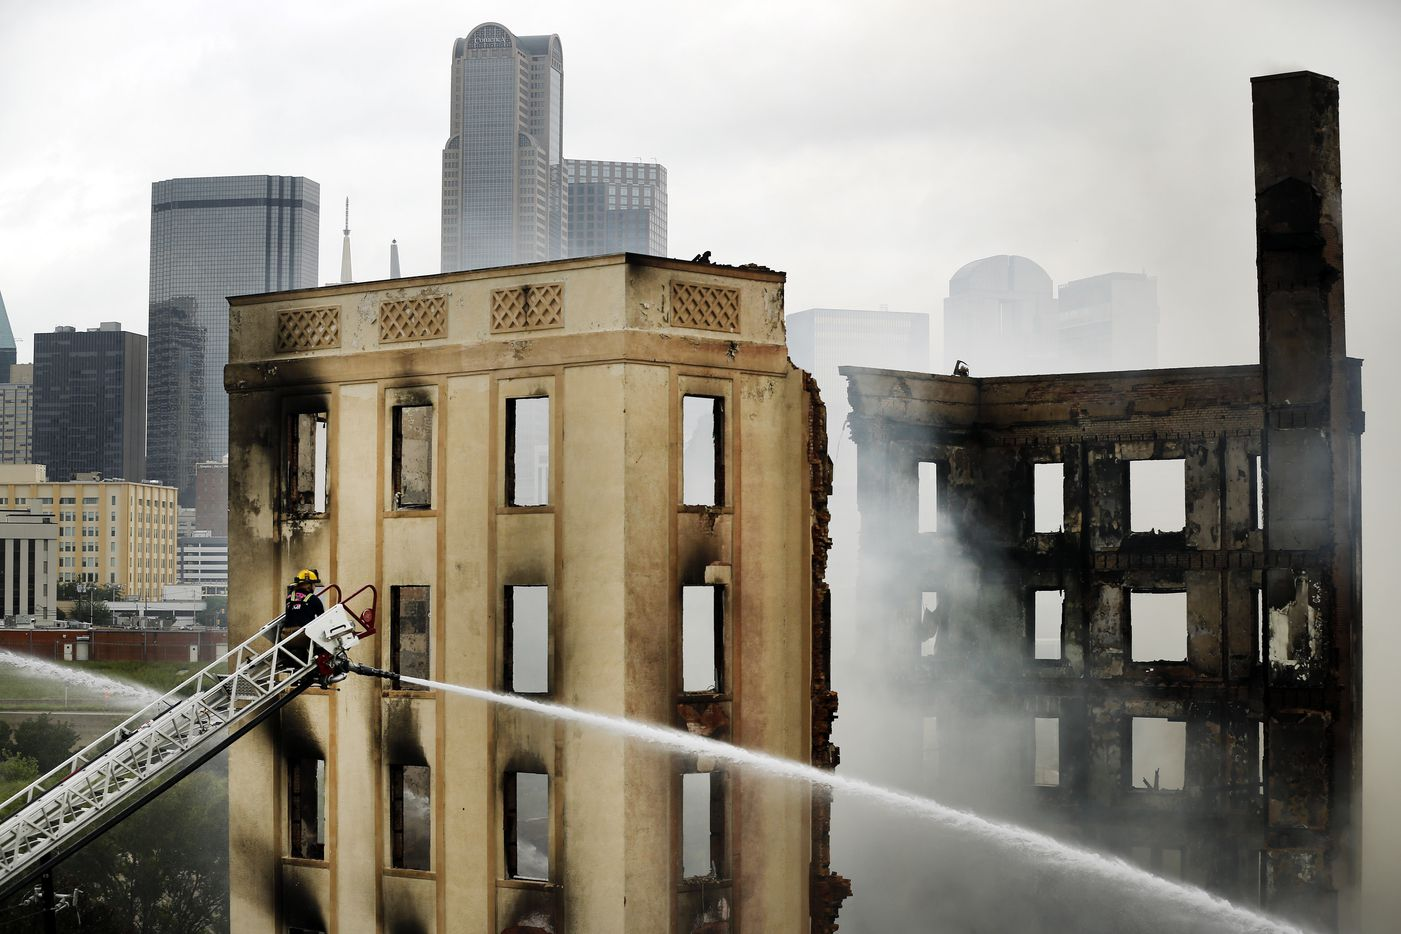 A Dallas firefighter manned an aerial hose pouring water on the destroyed historic Ambassador hotel just south of downtown Dallas on Tuesday morning. Over 100 firefighters responded to the four-alarm fire.